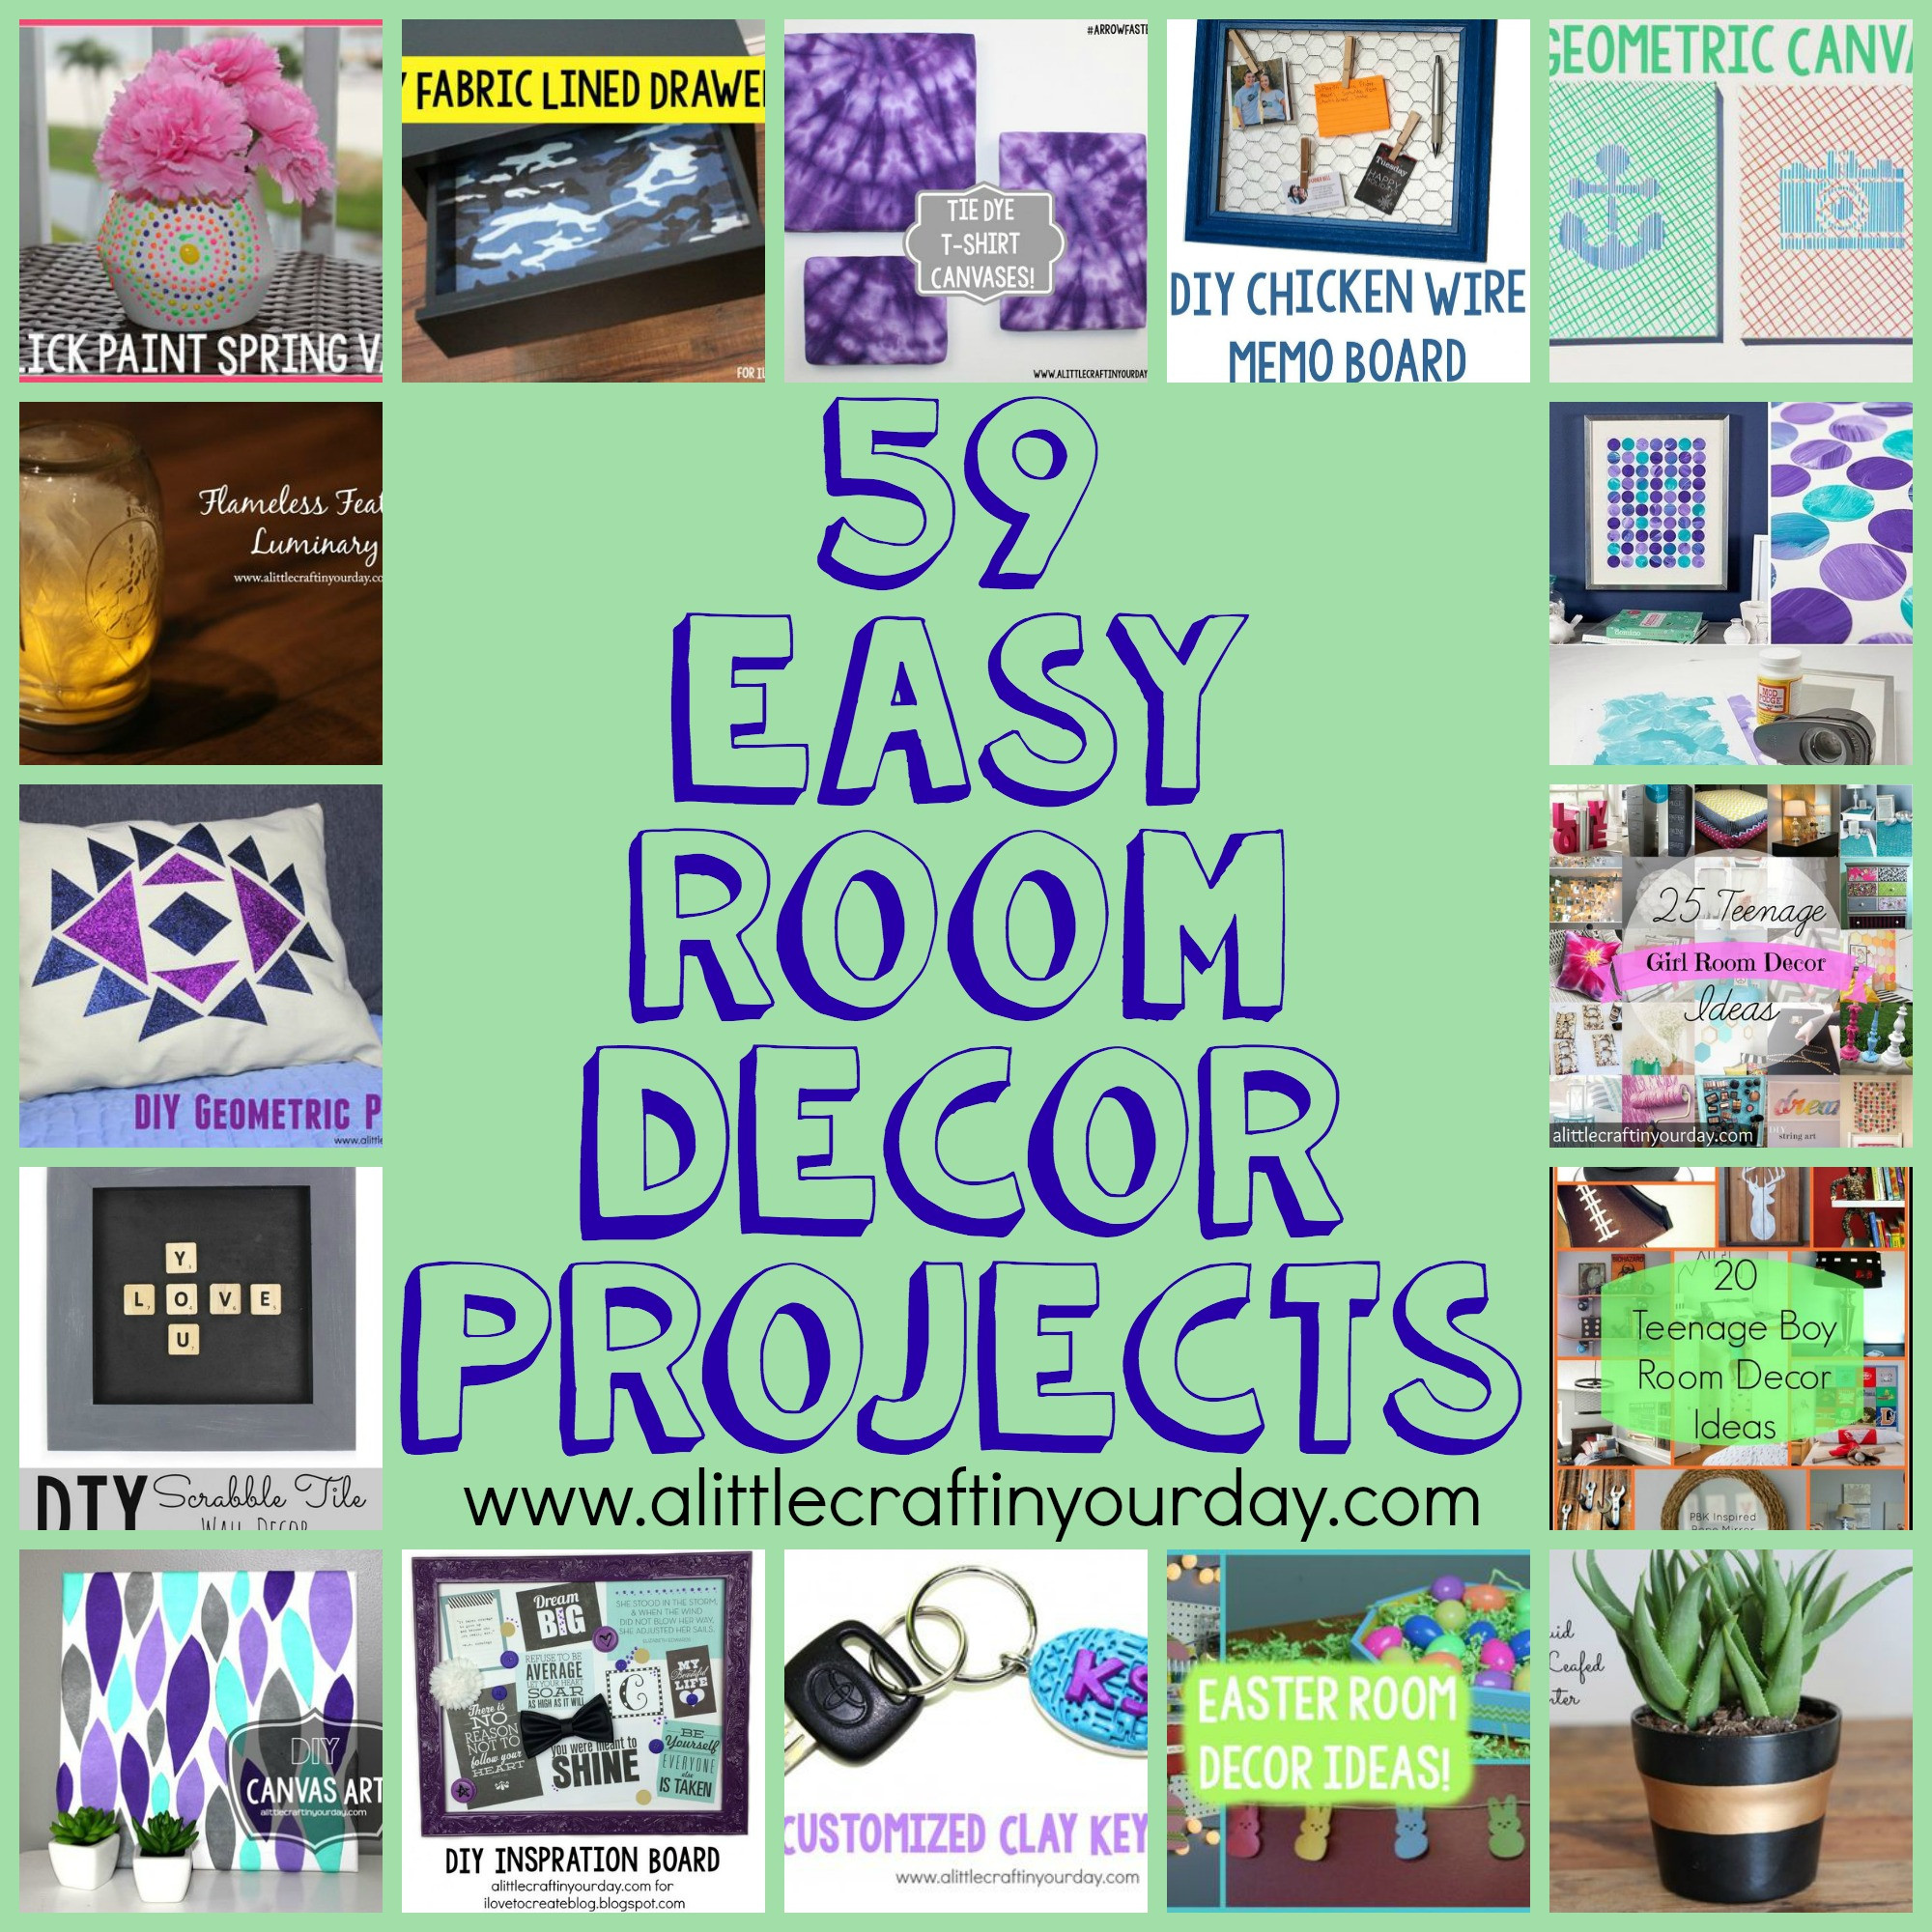 Best ideas about Easy DIY Room Decor . Save or Pin 59 Easy DIY Room Decor Projects A Little Craft In Your Day Now.